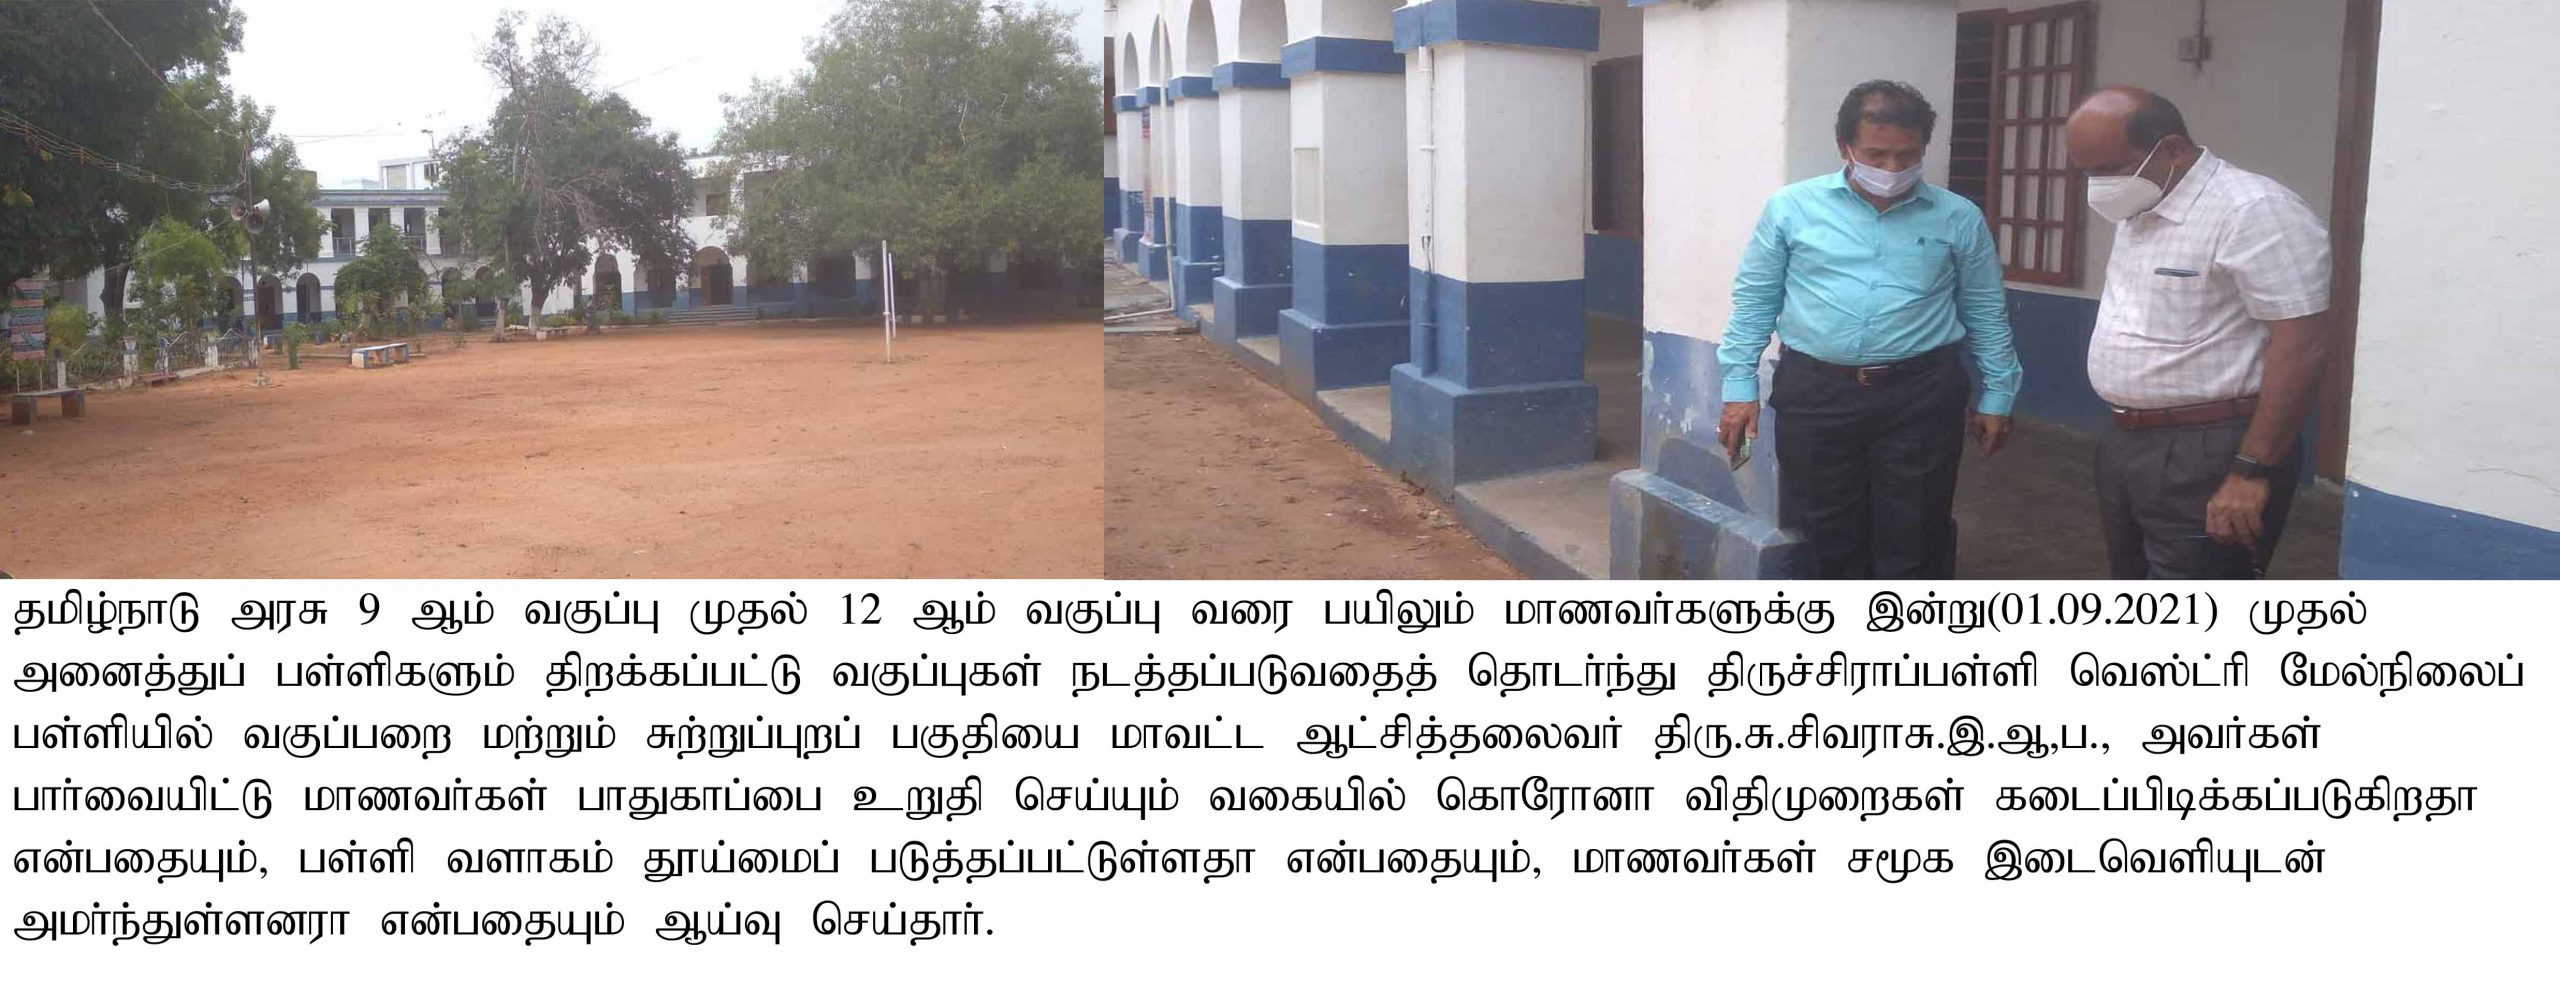 District Collector Inspected St. John's Vestry Anglo-Indian Higher Secondarys School on 1-9-21